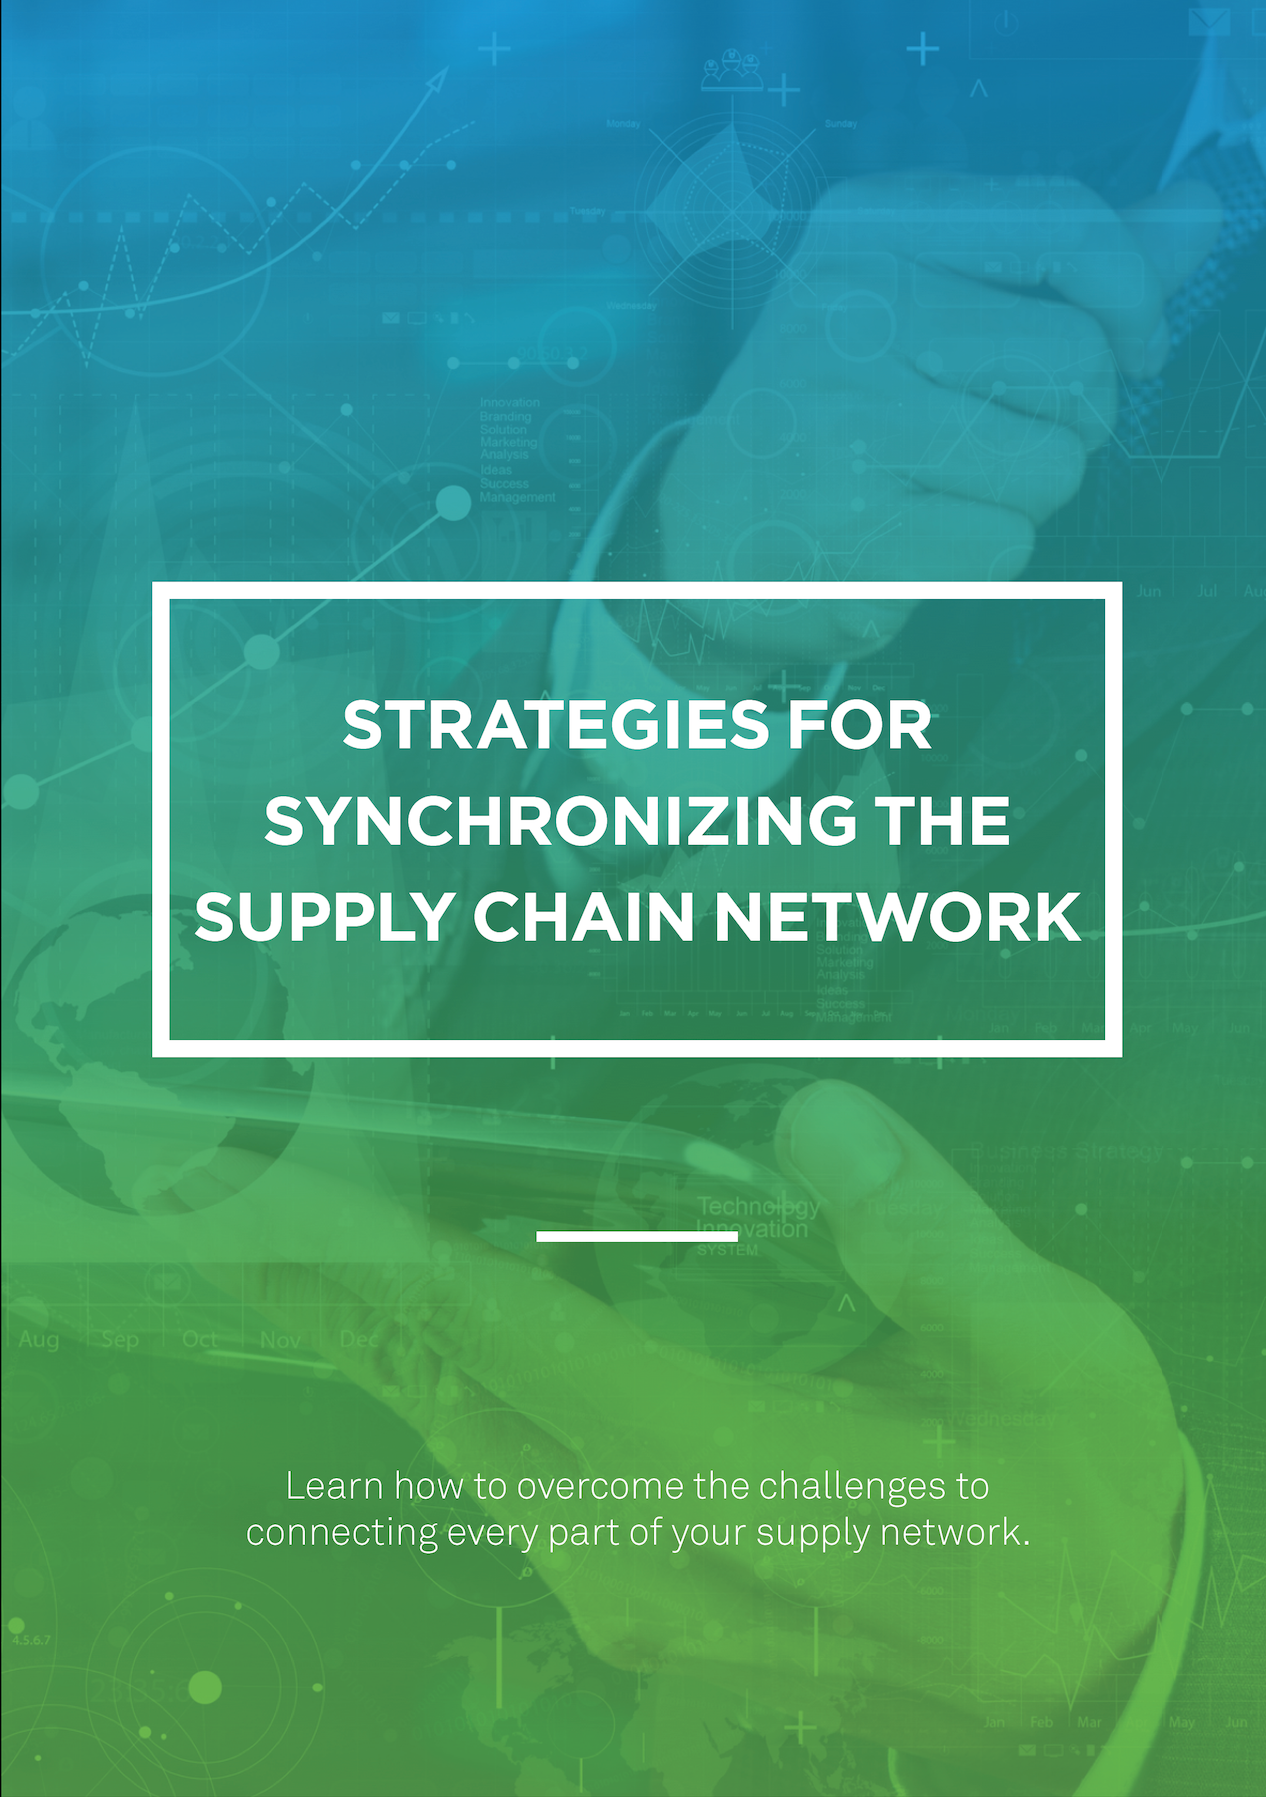 Strategies for Synchronizing the Supply Chain Cover-004325-edited.png